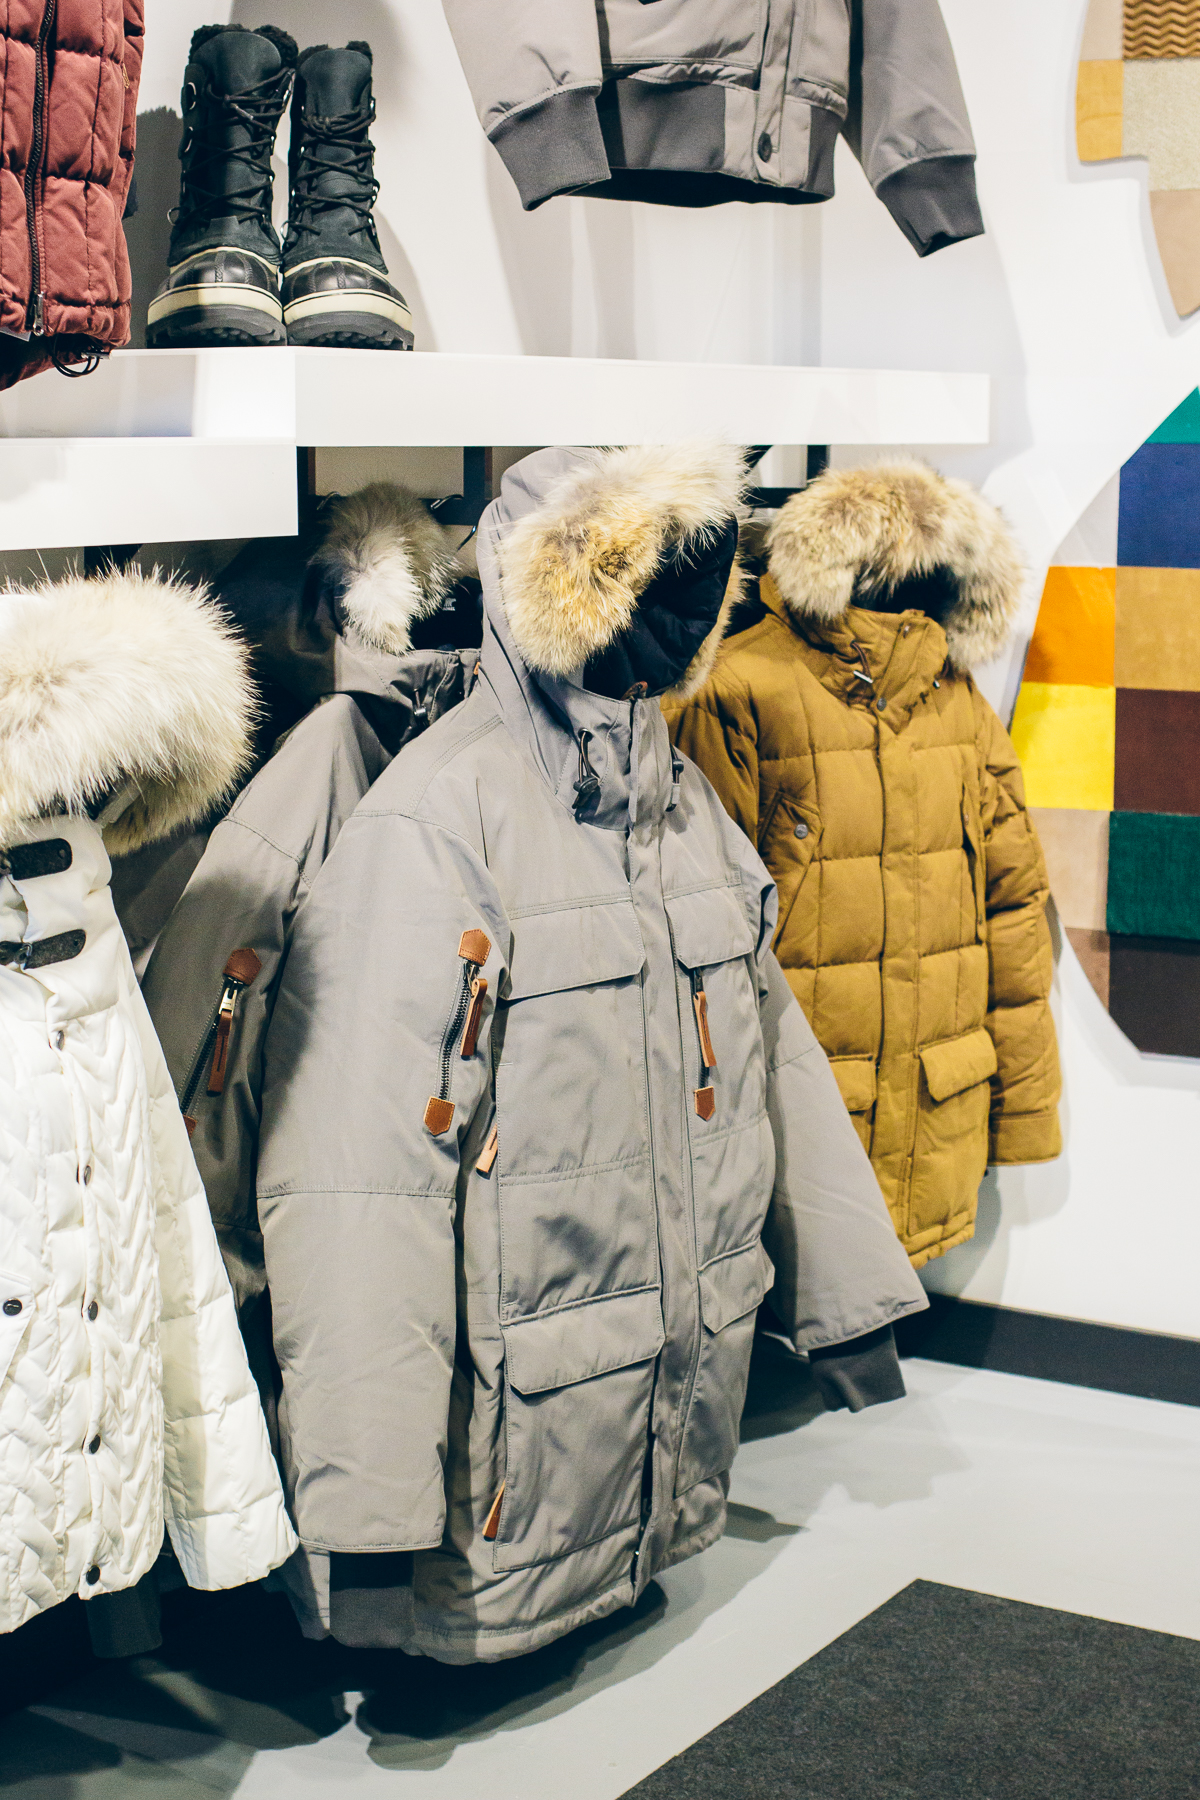 Sorel Winter Boots, Sorel store at Westfield Old Orchard Mall —via @TheFoxandShe